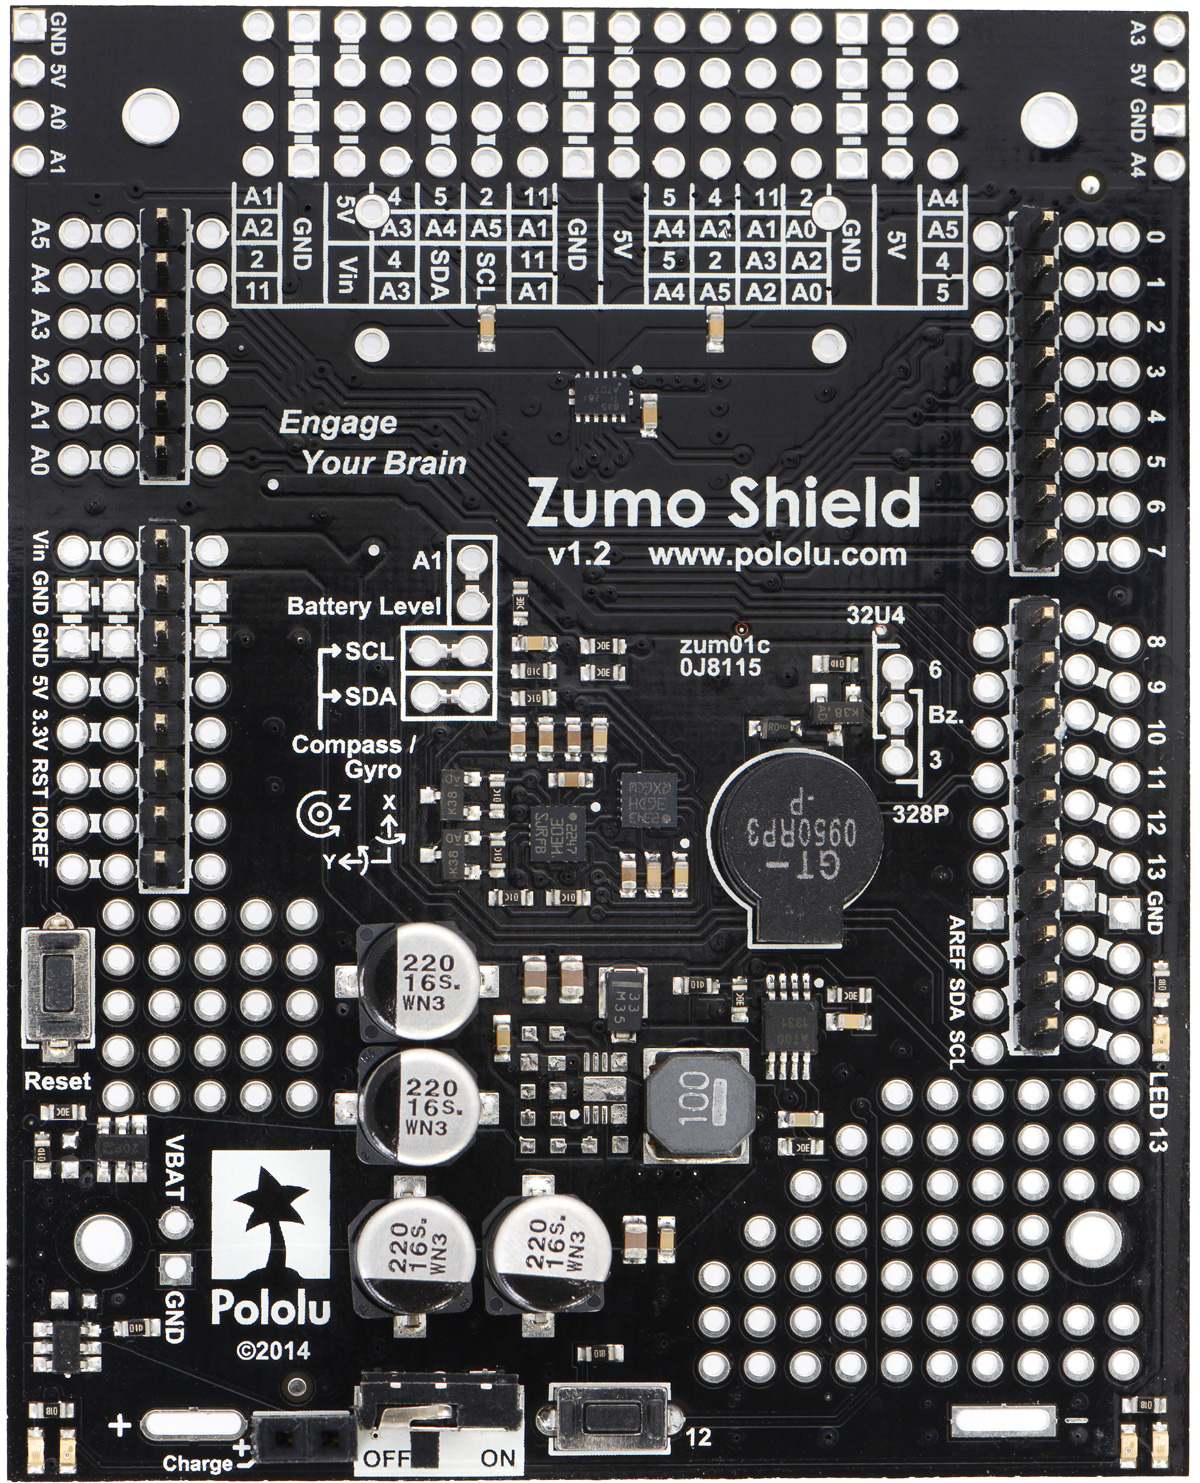 Pololu Zumo Shield For Arduino V12 Schematic Diagram Of The Minimu9 Gyro Accelerometer And With Included Through Hole Components Installed